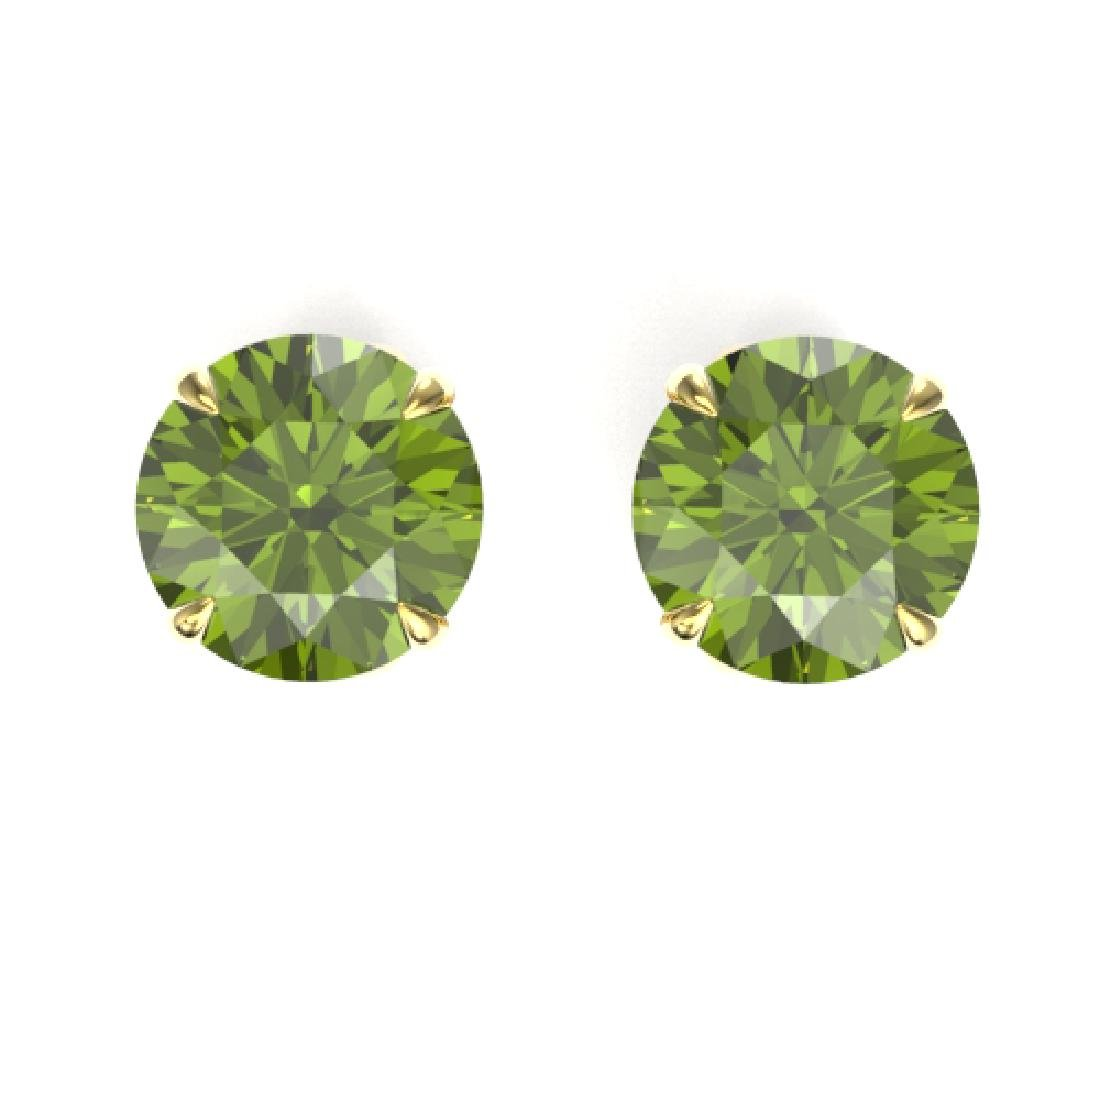 4 CTW Green Tourmaline Designer Solitaire Stud Earrings